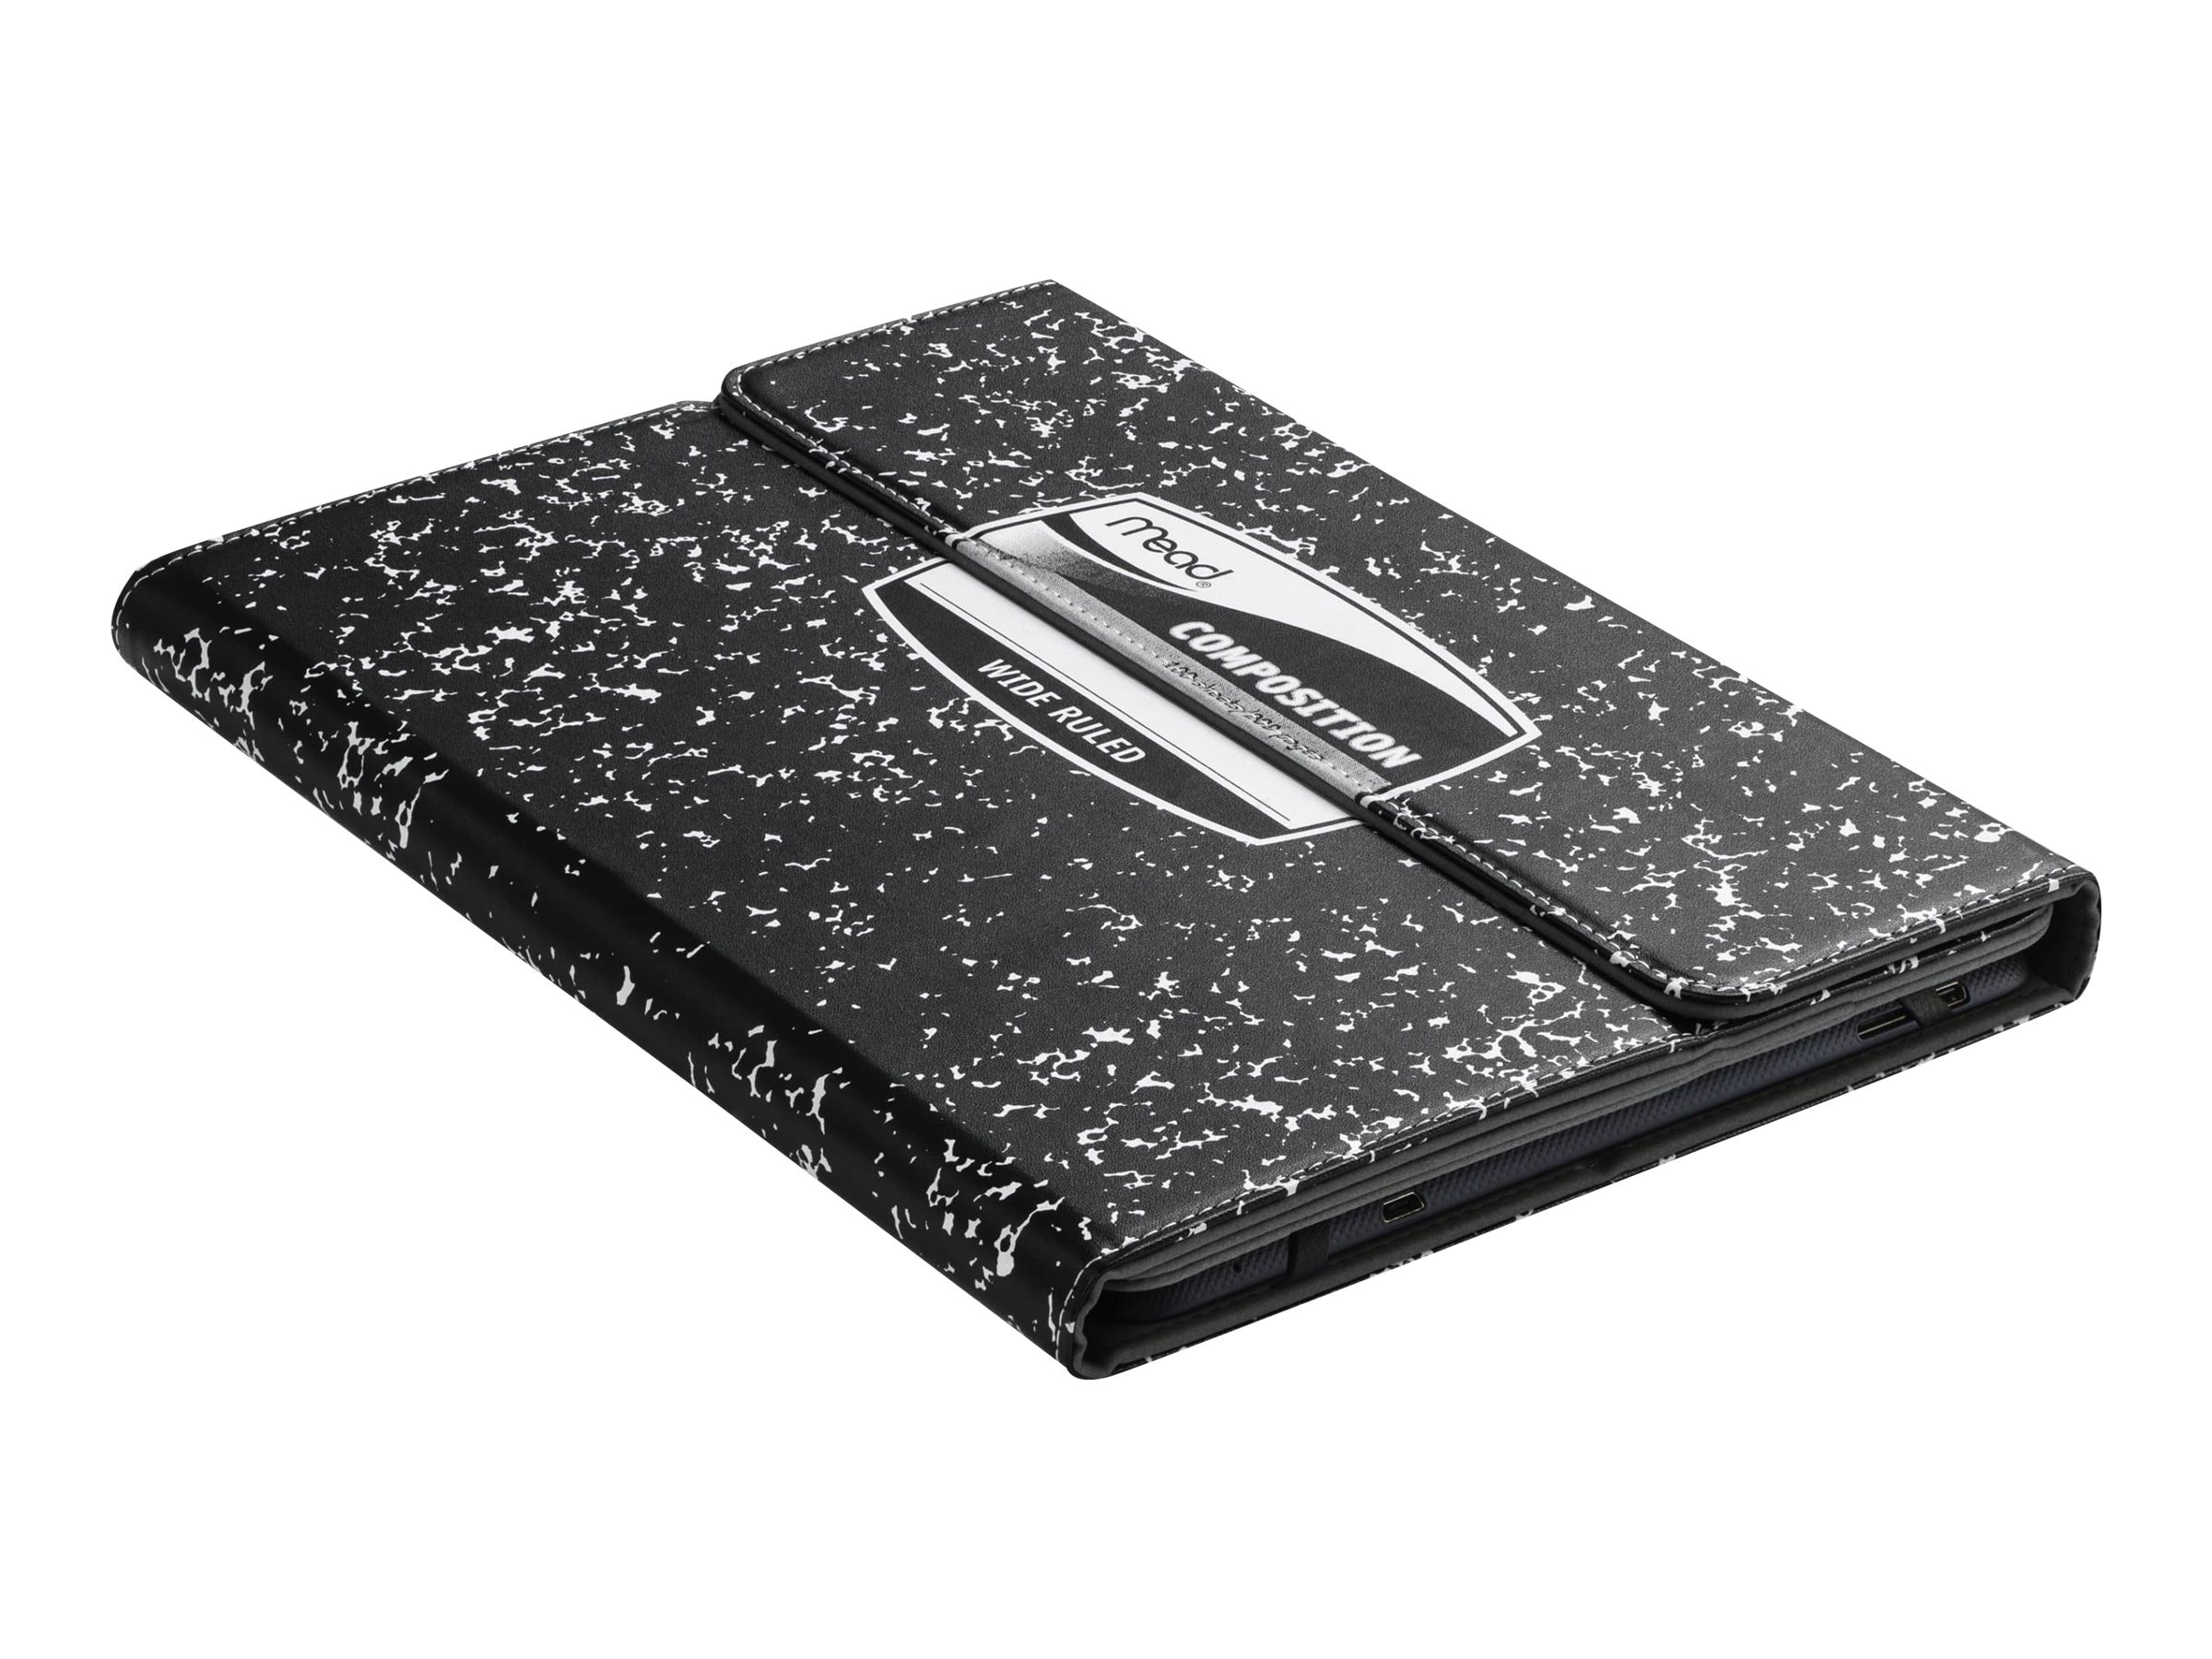 Kensington Composition Book Universal Case for 9 10 Tablets, Black